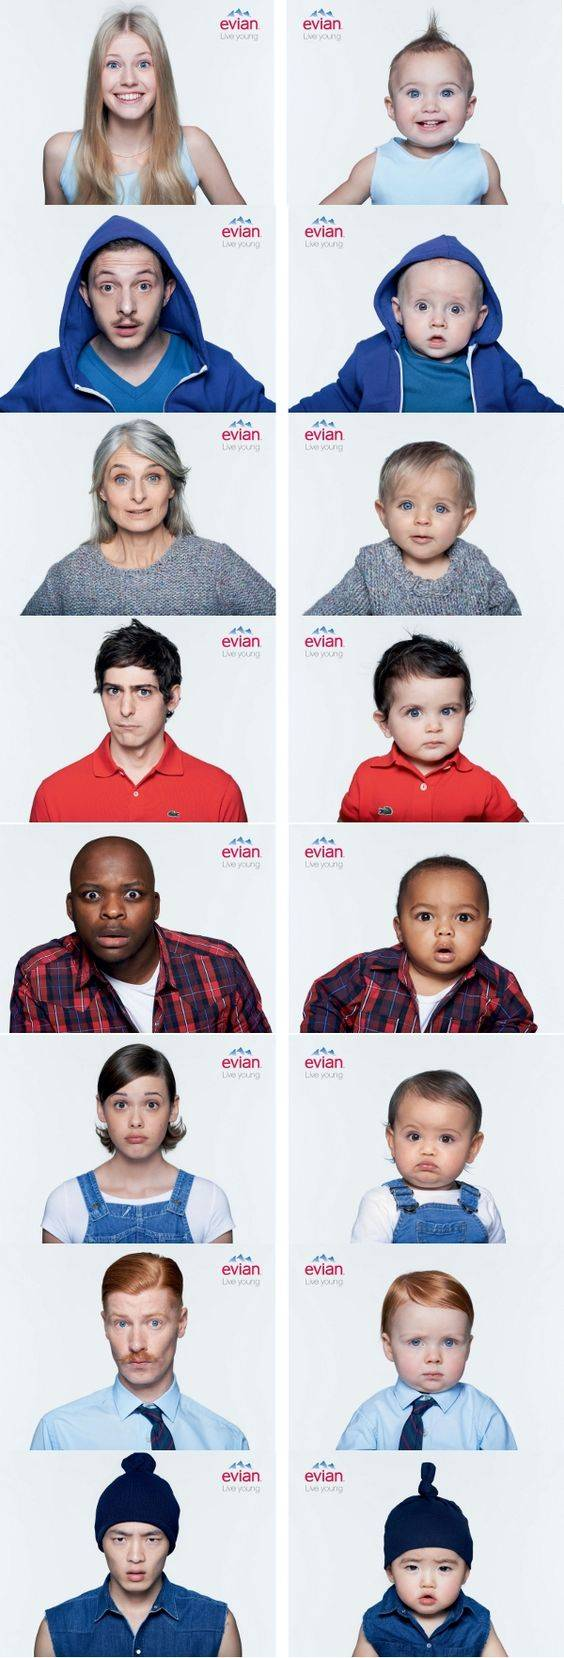 Evian Live Young Adult - Baby Comparison Print Ads // Creative Print Ad Campaigns & Advertisements